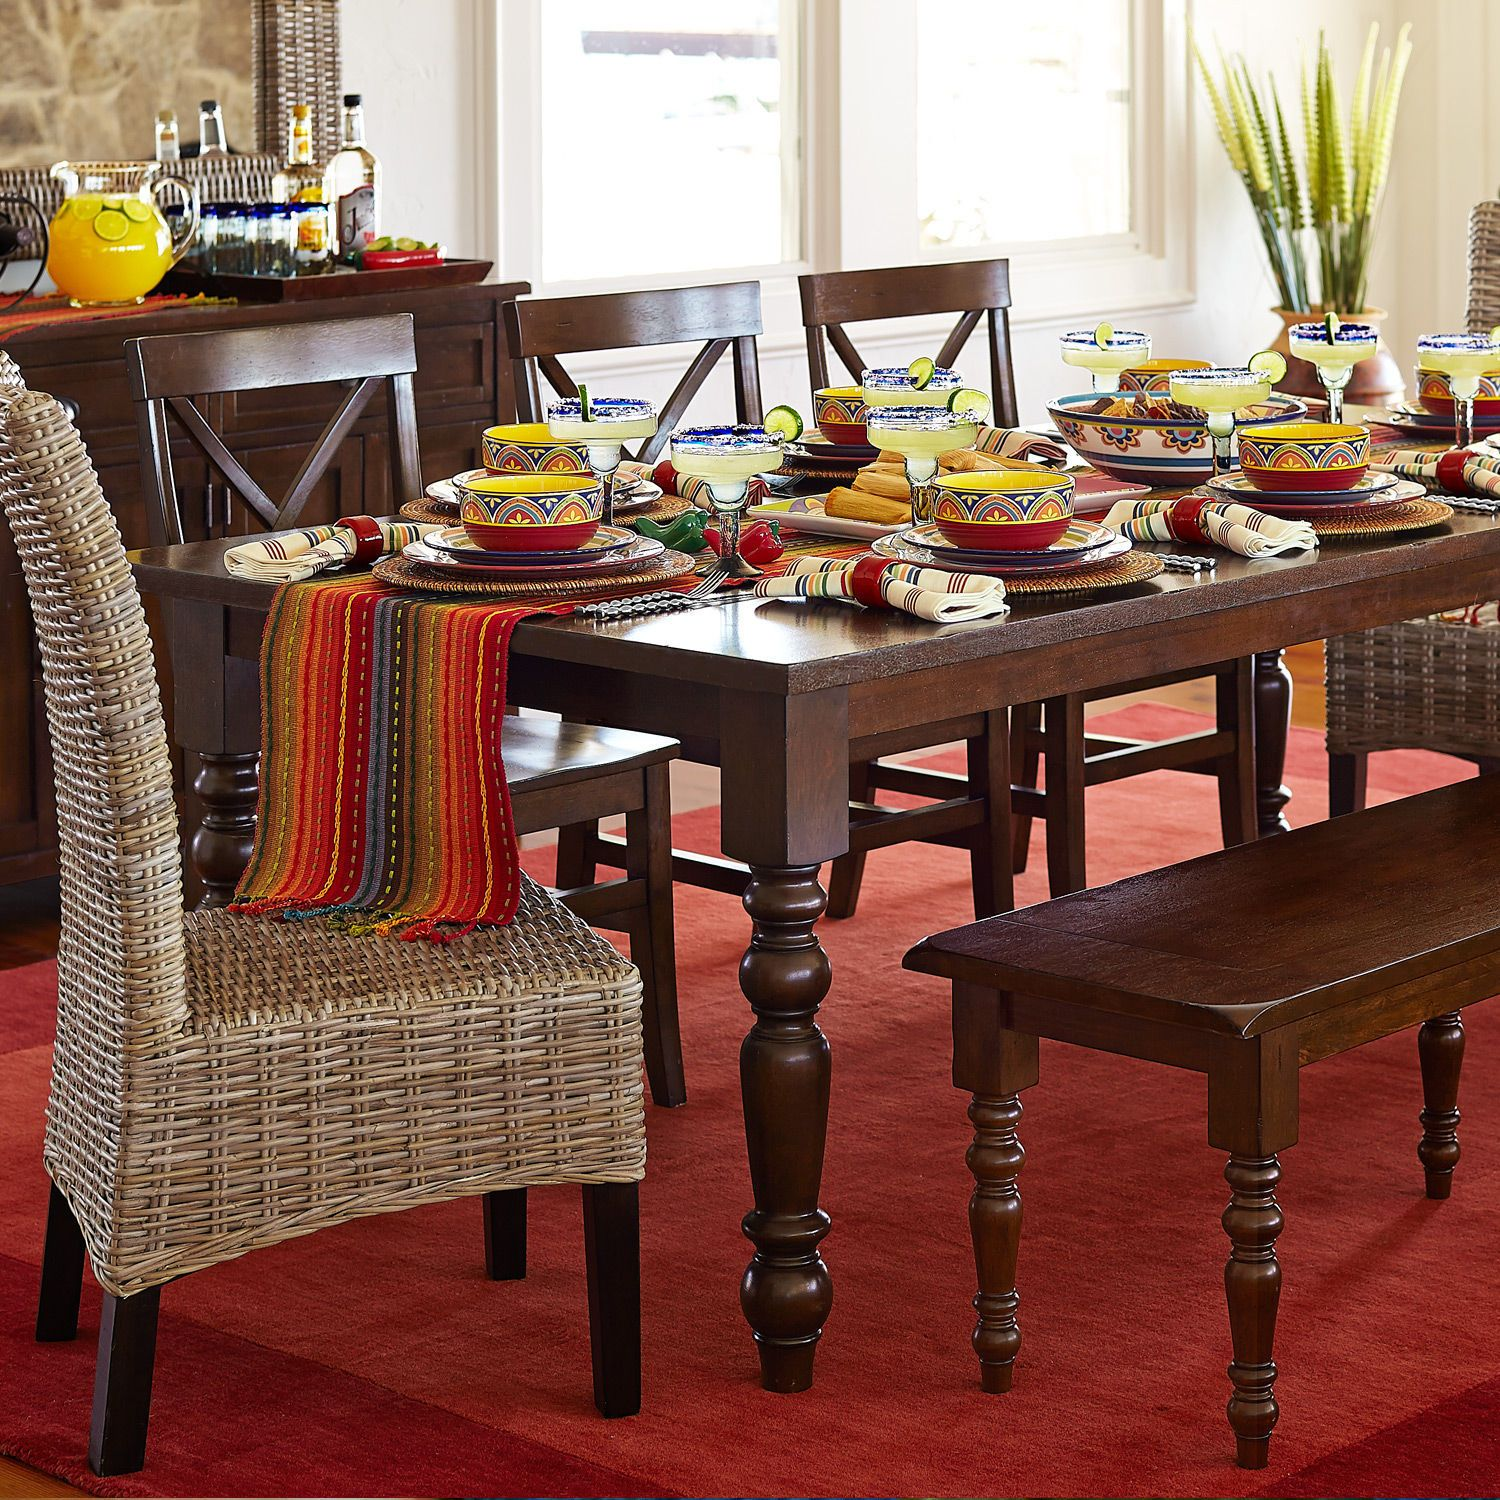 Torrance Turned Leg Table Mahogany Brown Dining Room Furniture Dining Room Sets Rattan Dining Chairs #pier #one #living #room #tables